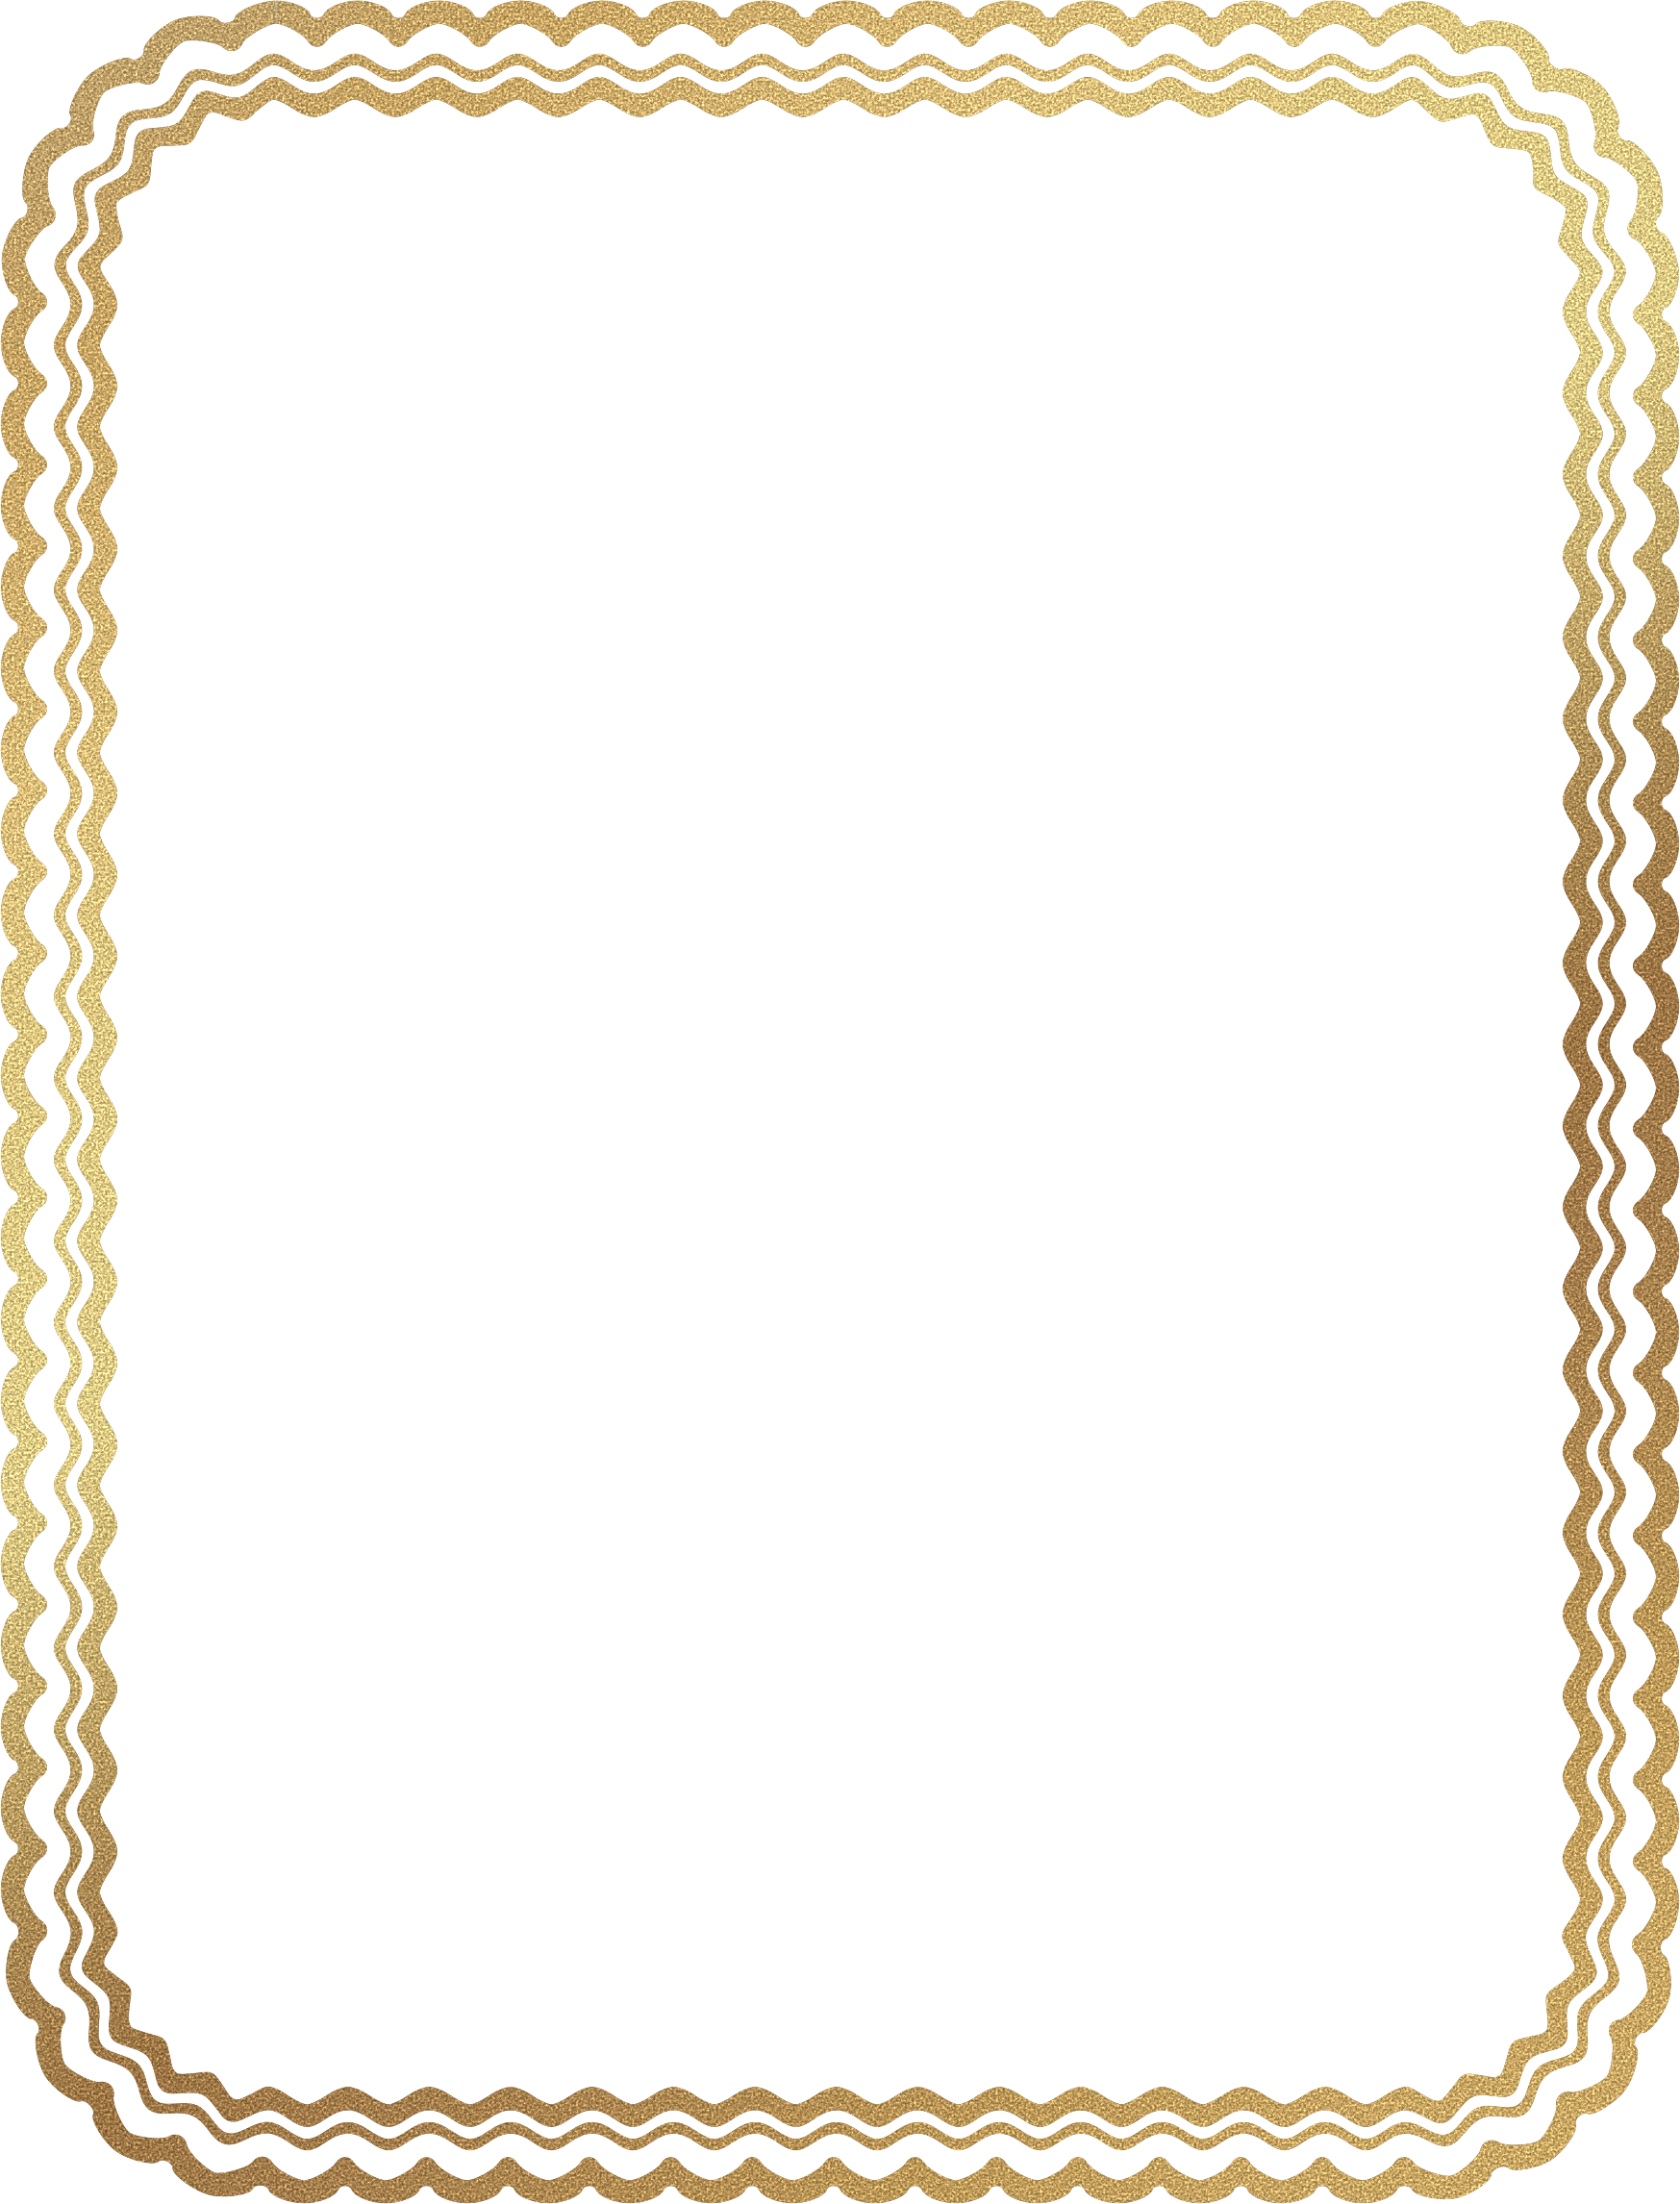 Clipart - Gold Sand Border